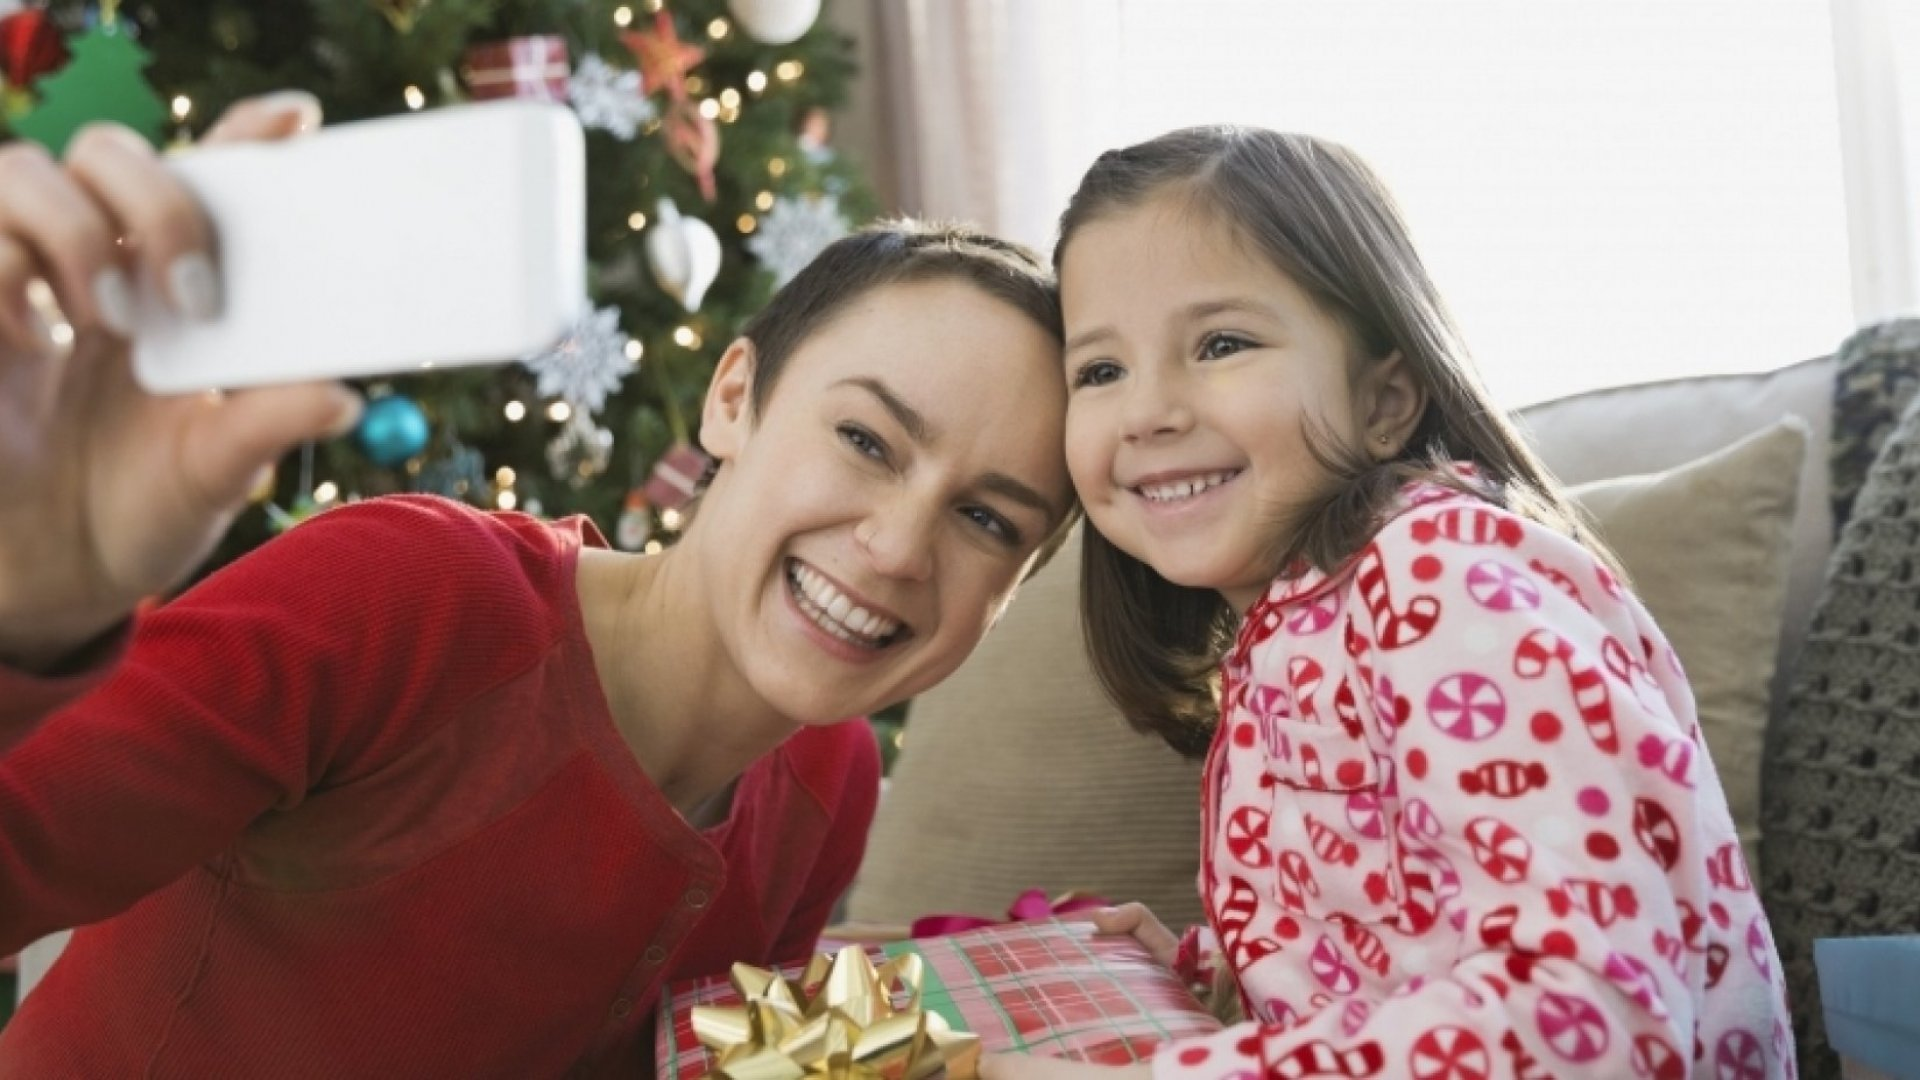 How to Connect With Family When You Can't Go Home for the Holidays